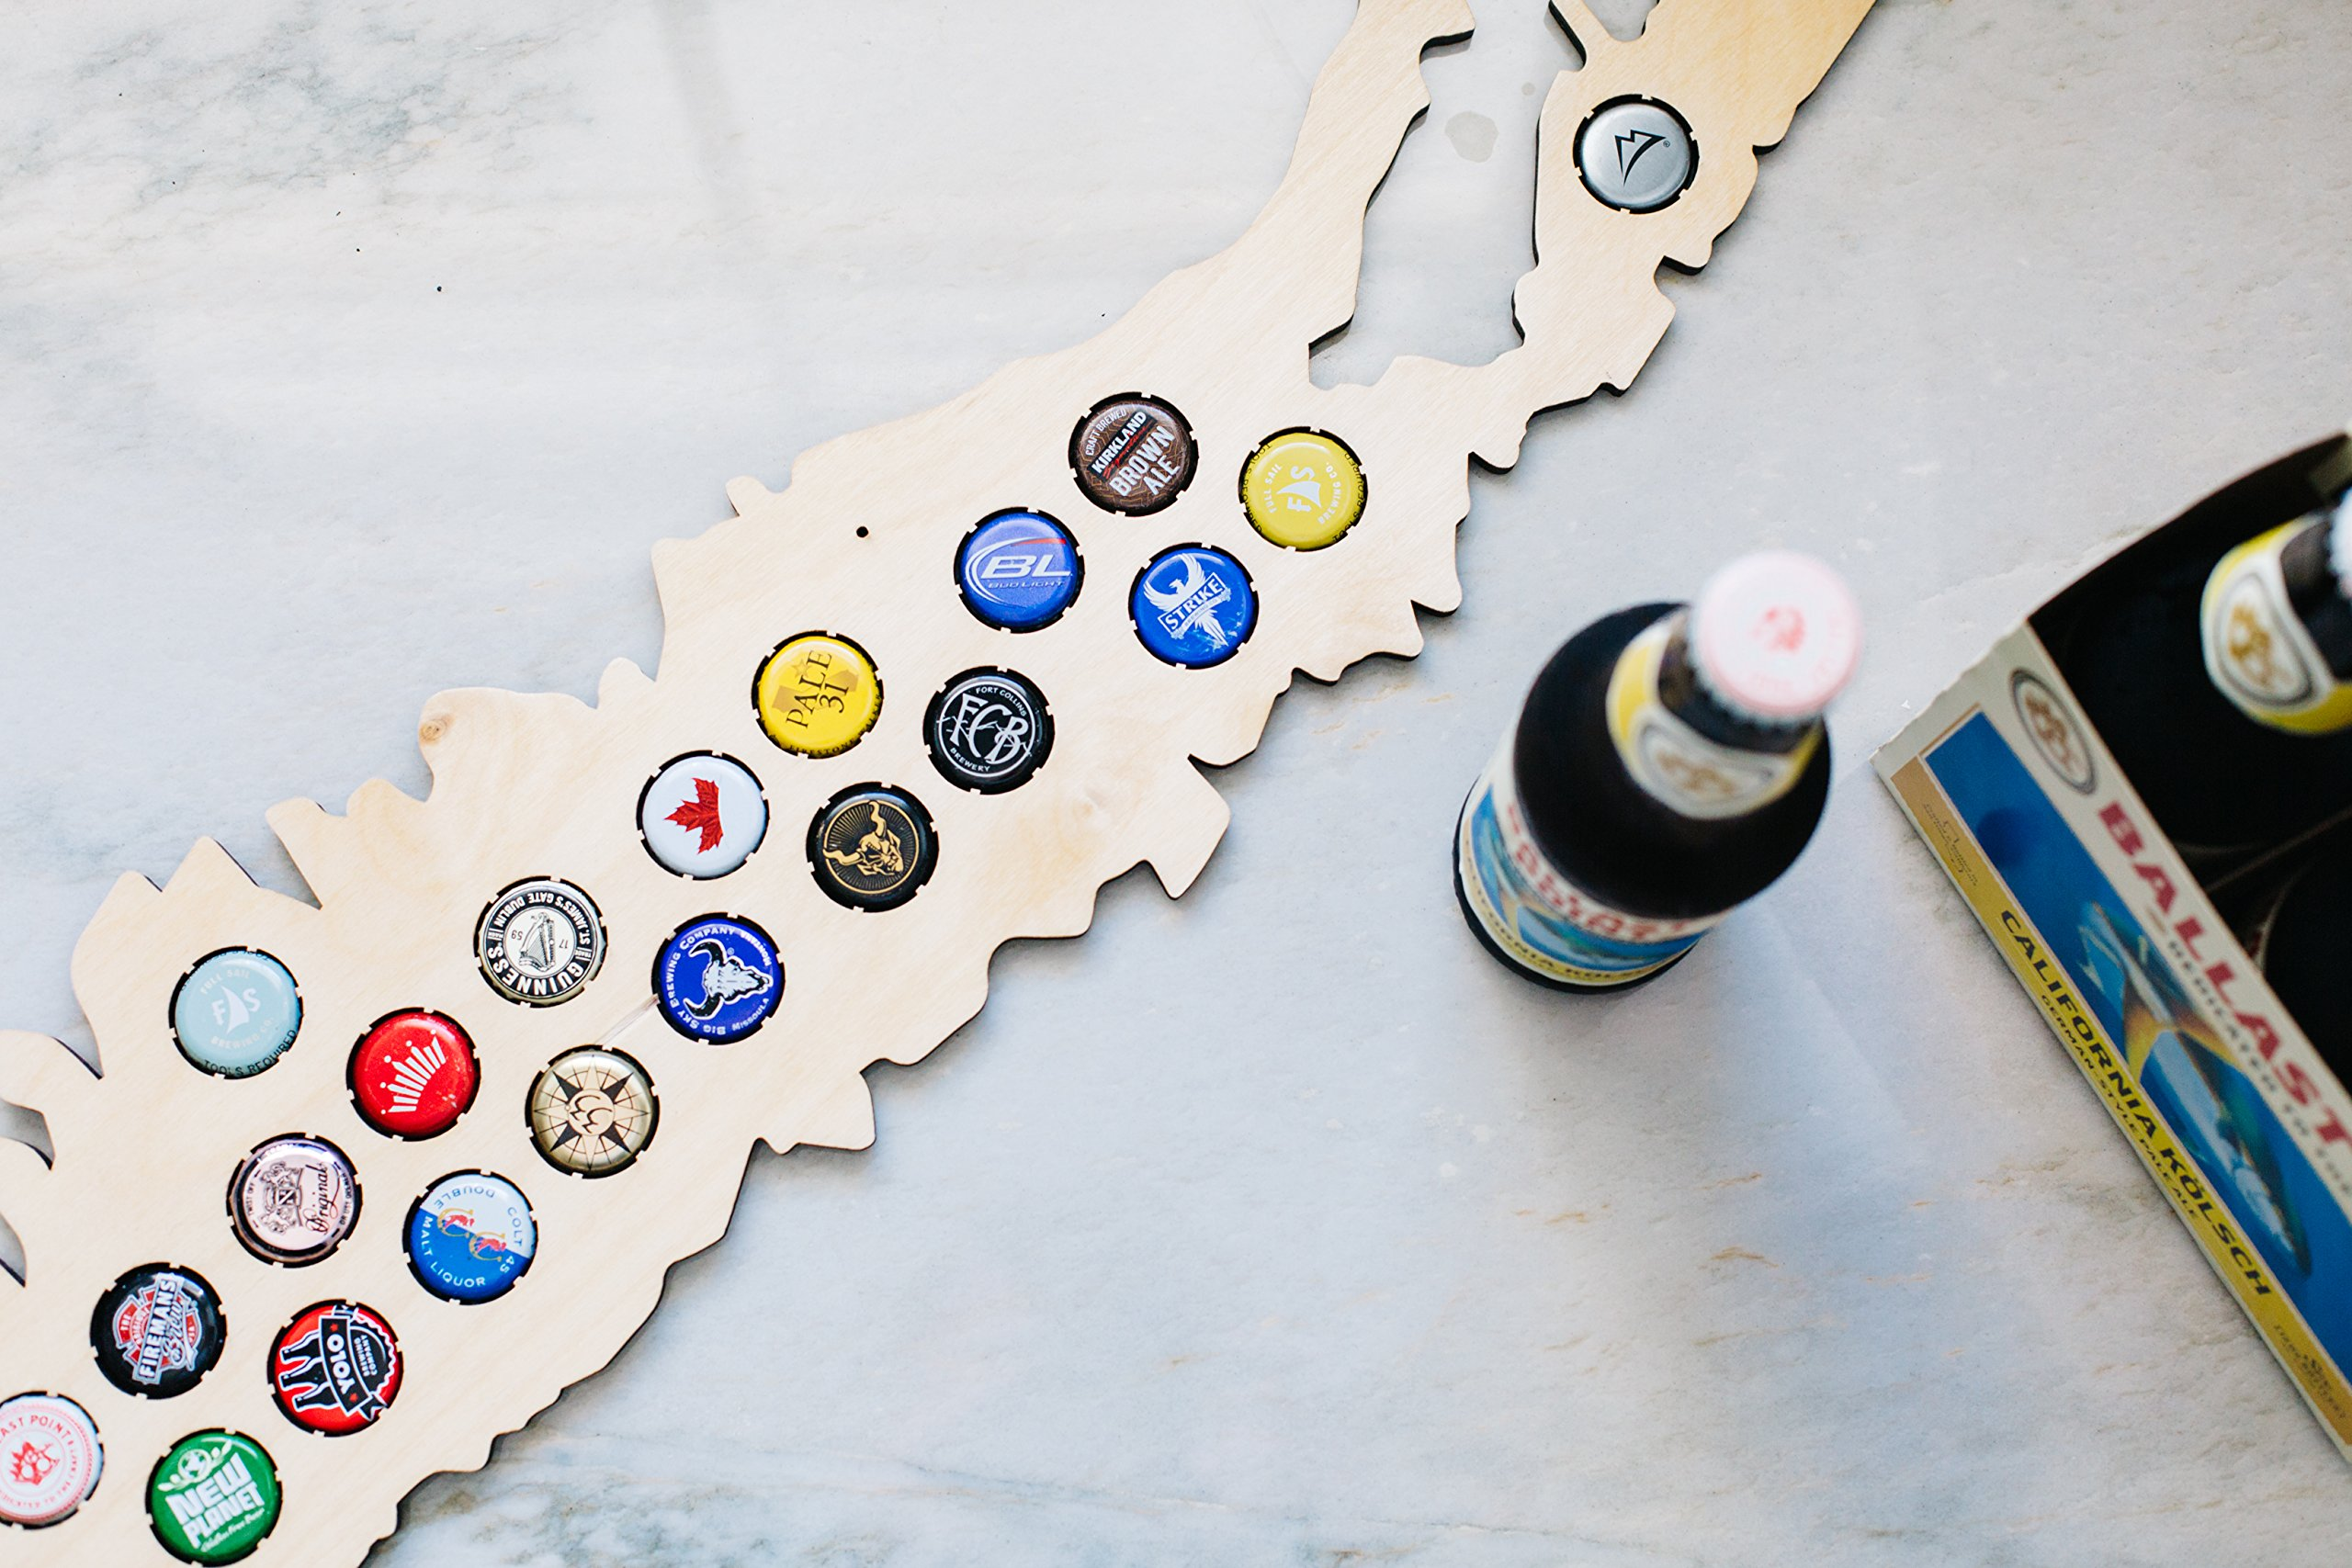 Long Island Beer Cap Map - Holds Craft Beer Bottle Caps - New York Neighborhoods (natural_wood) by Beer Cap Country (Image #4)